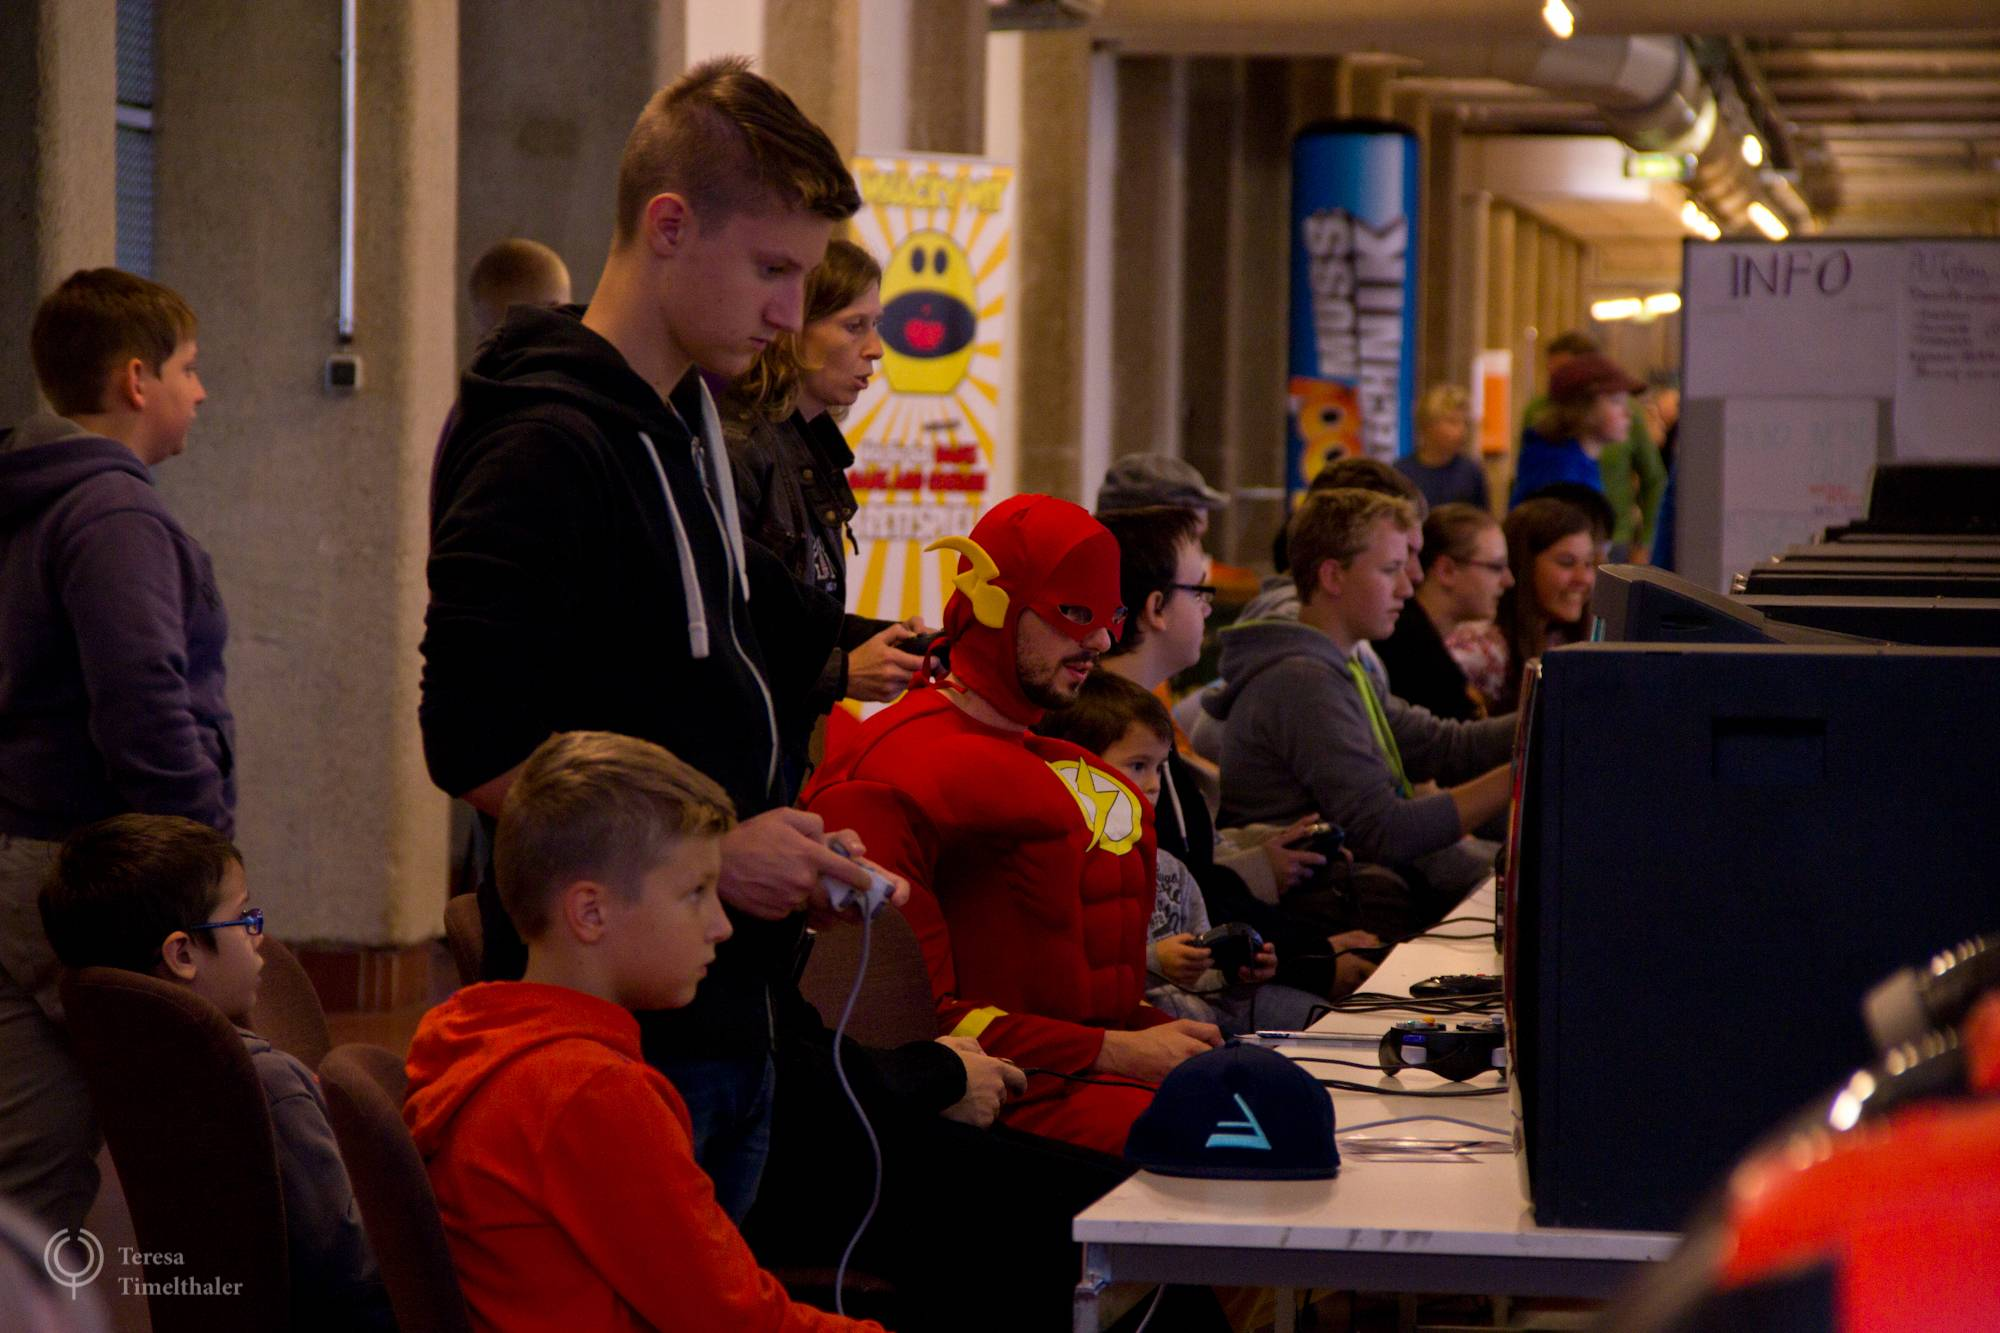 GameStage Expo 09/2014